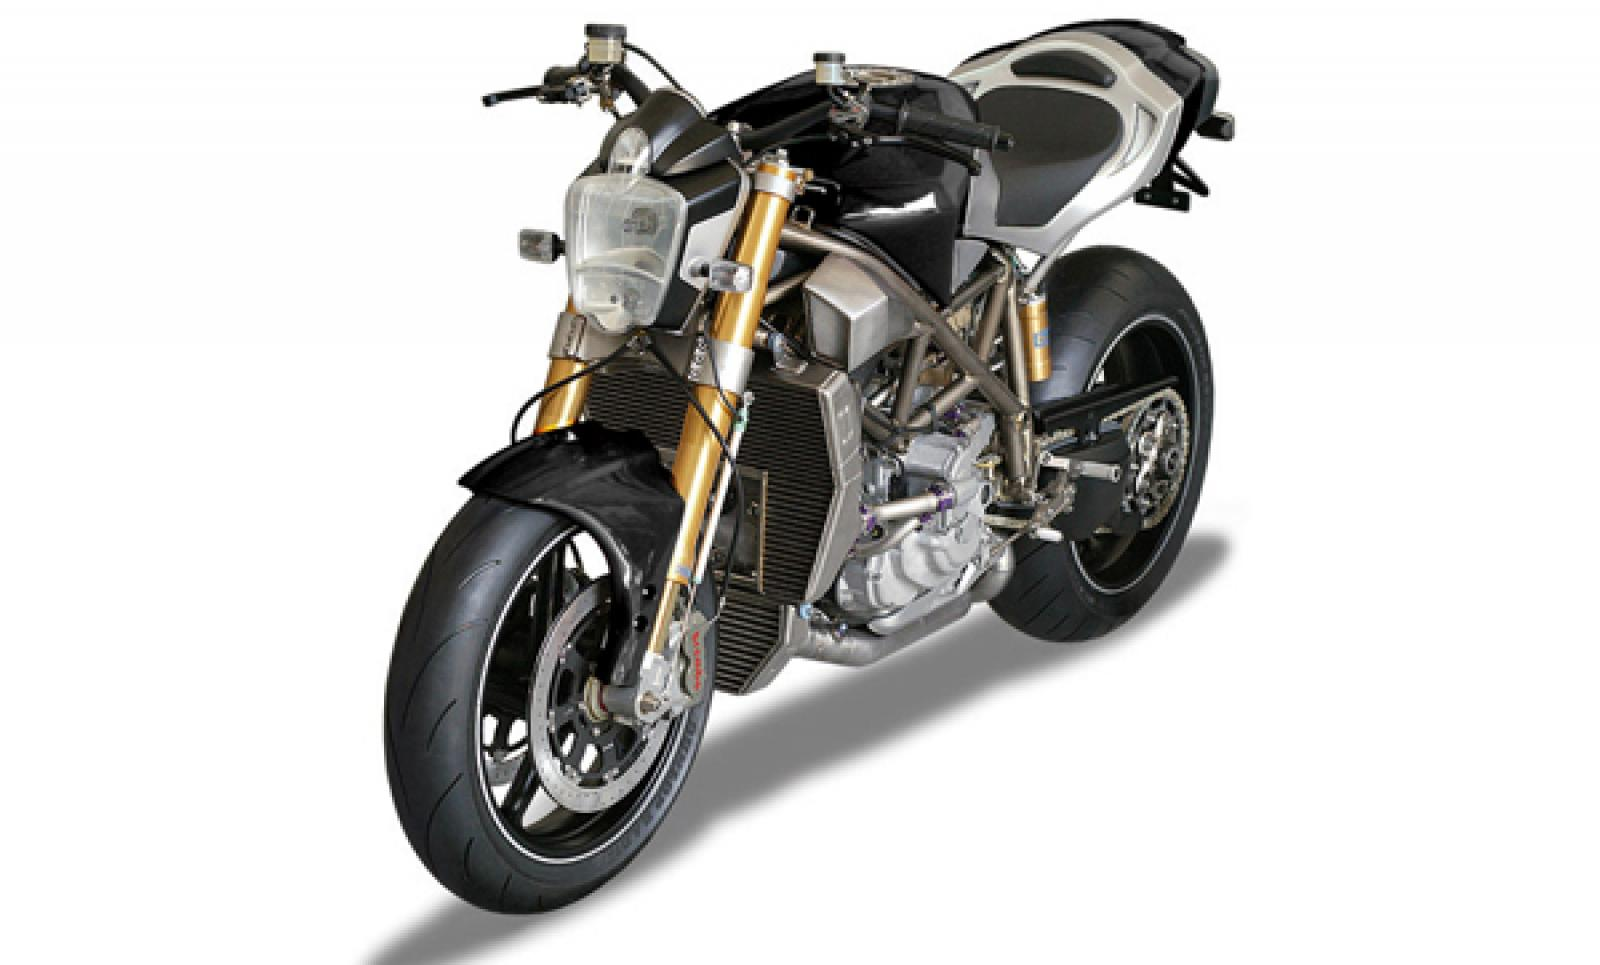 ncr-macchia-nera-225000_expensive-motorcycles